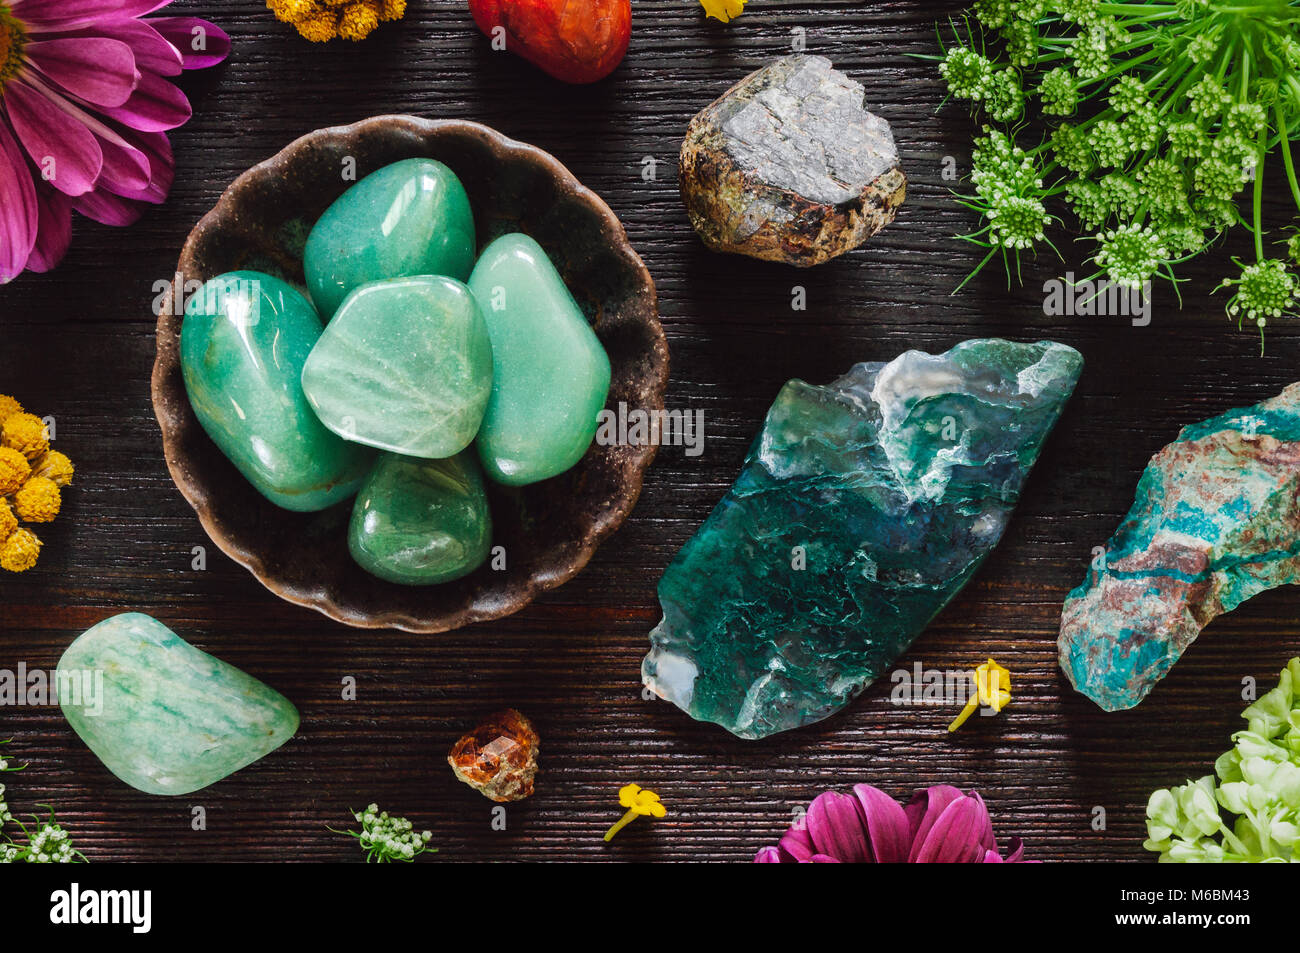 Stones of Virgo, including Carnelian, Green Aventurine, Amazonite, Garnet, Chrysocolla and Moss Agate - Stock Image